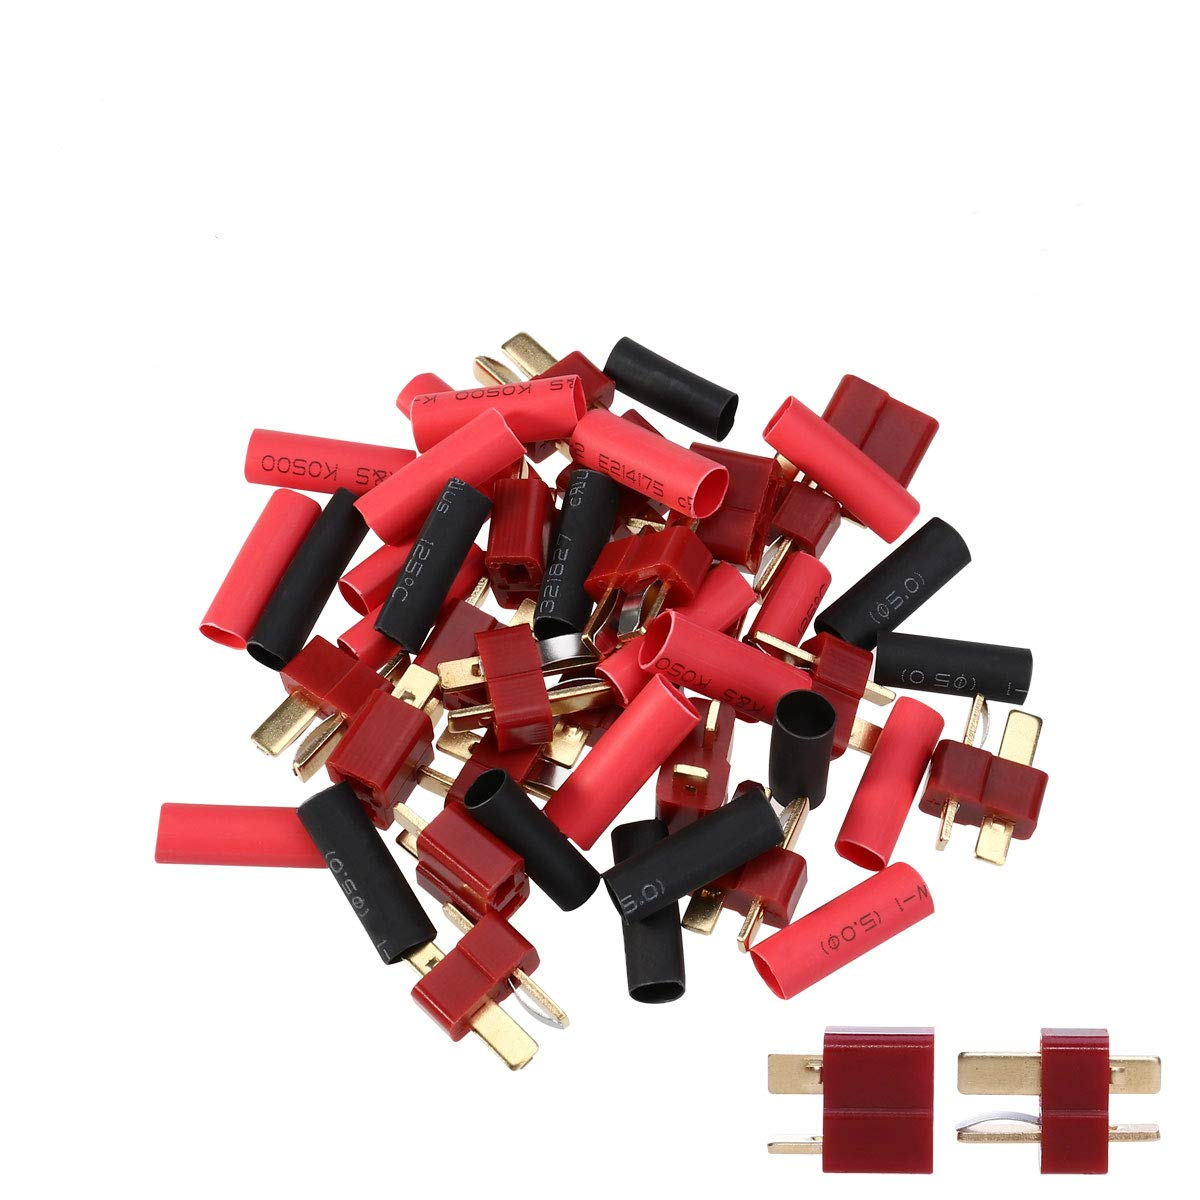 B072Q9SFNR UEETEK 10 Pairs Ultra T-Plug Connectors Deans Style Male and Female with 20pcs Shrink Tubing For RC LiPo Battery 618np2BSLgcL